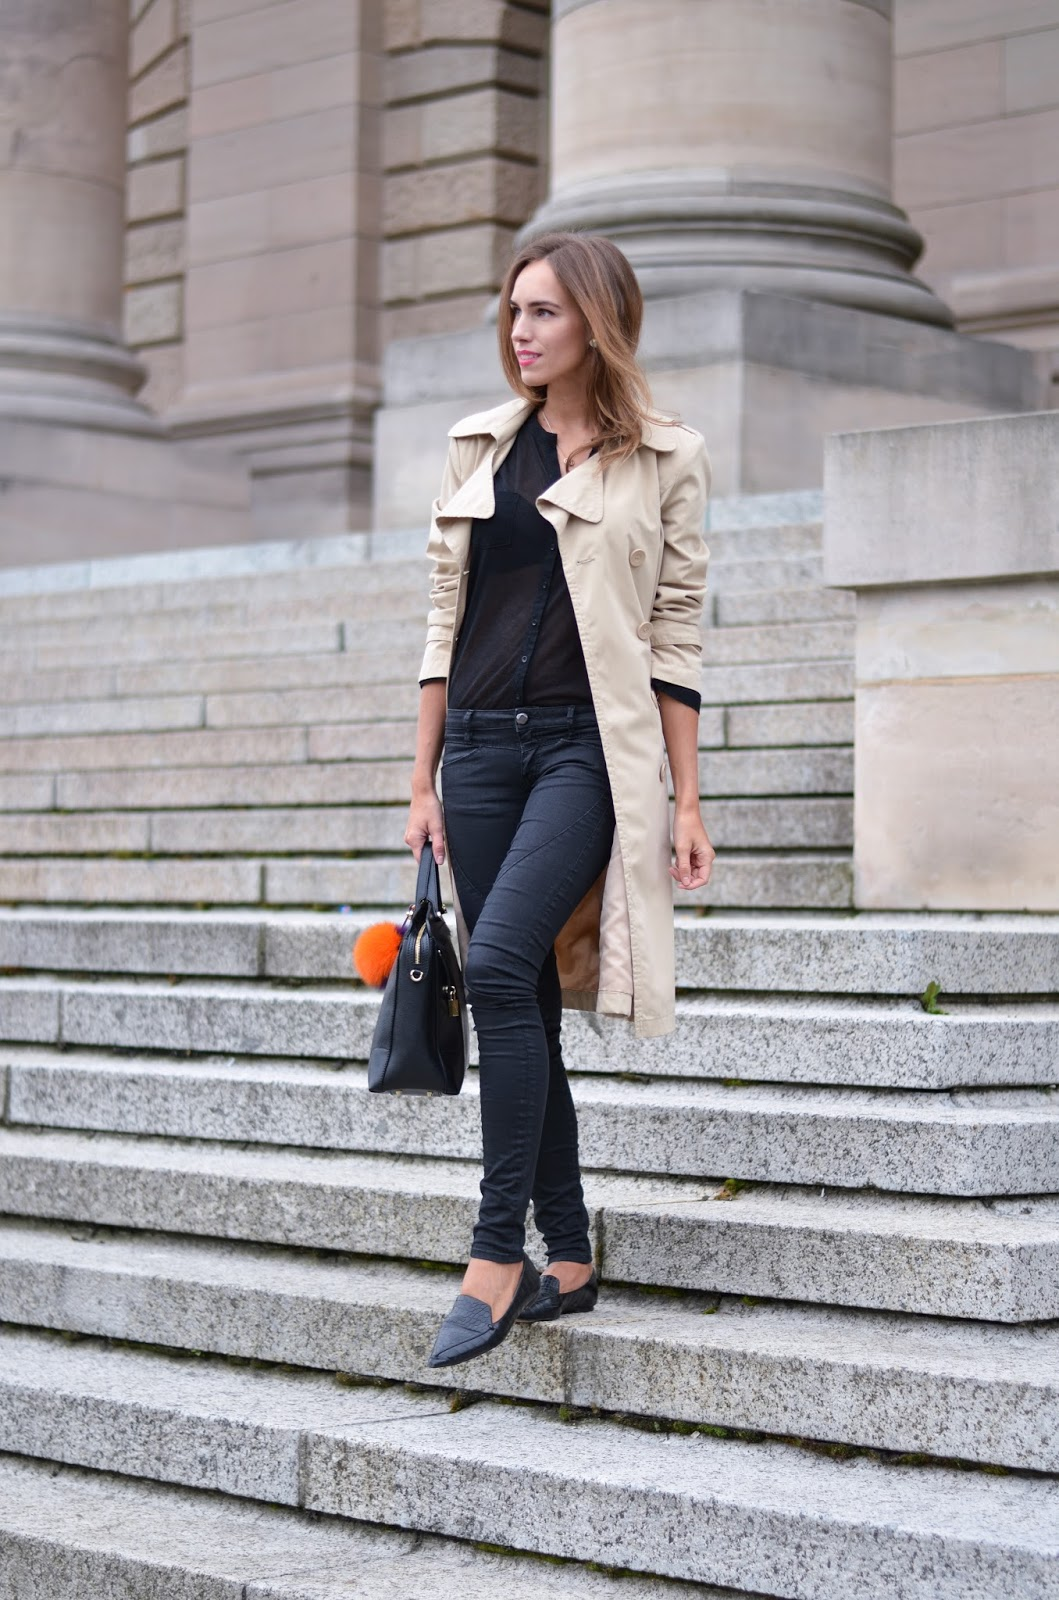 kristjaana mere trench coat black jeans black shirt summer outfit